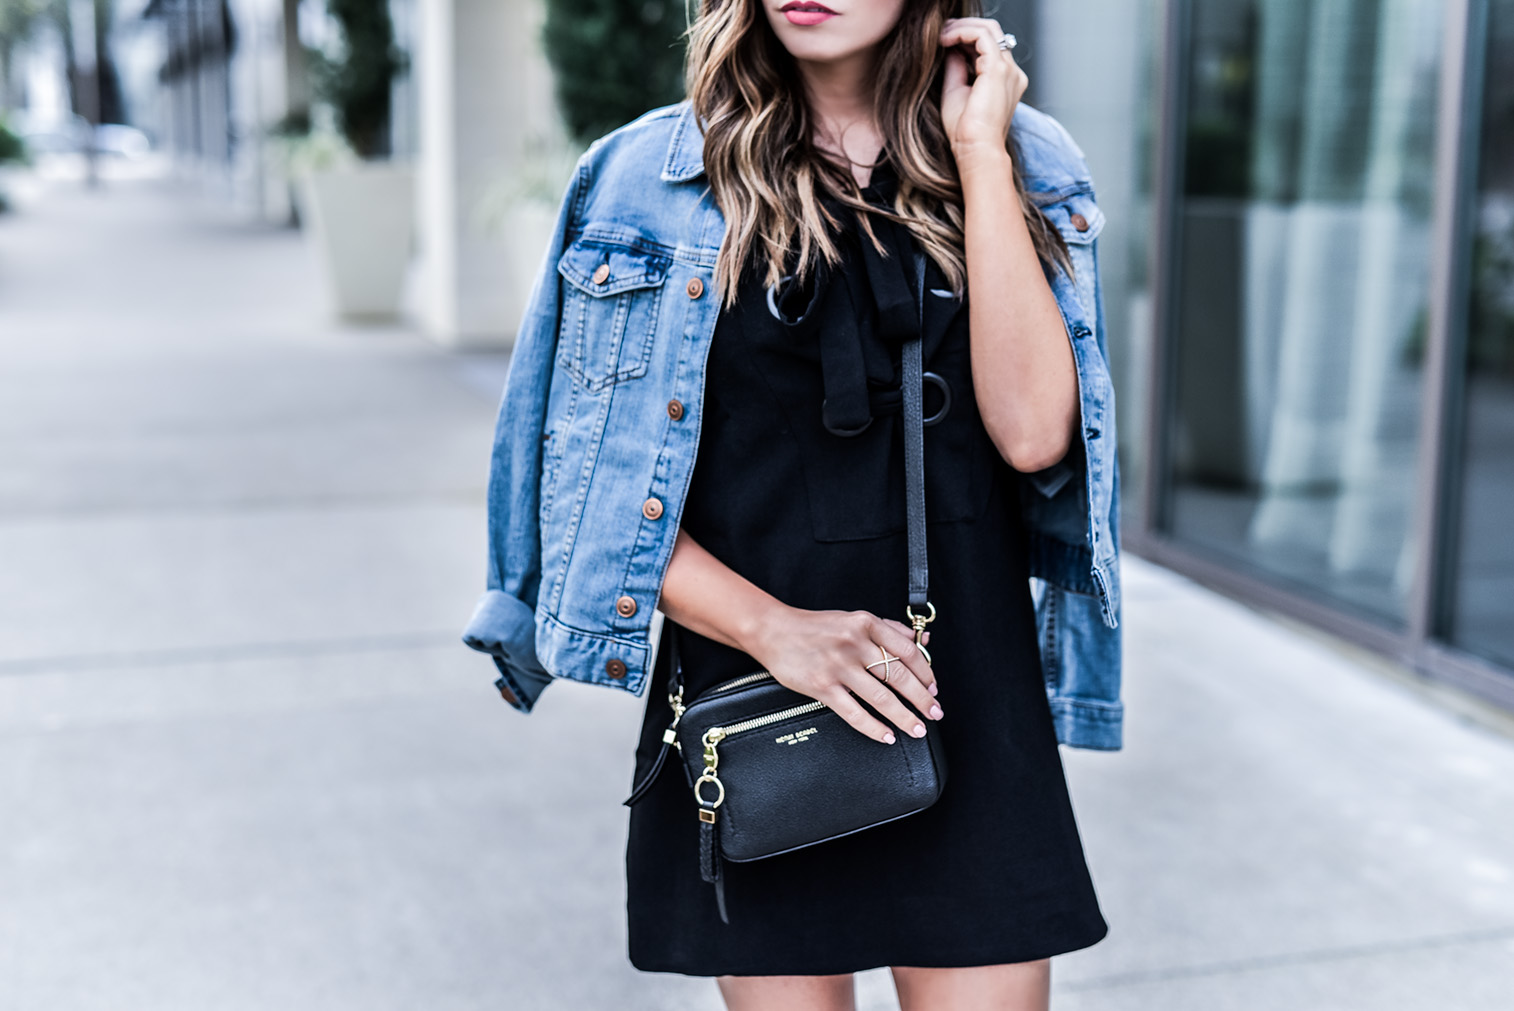 Love this black lace up front dress by English Factory! Spring is almost here so I'm adding light layers into my wardrobe | Fashion blogger, Henri Bendel bag, lace up sandals, women's outfit ideas, outfit ideas for school